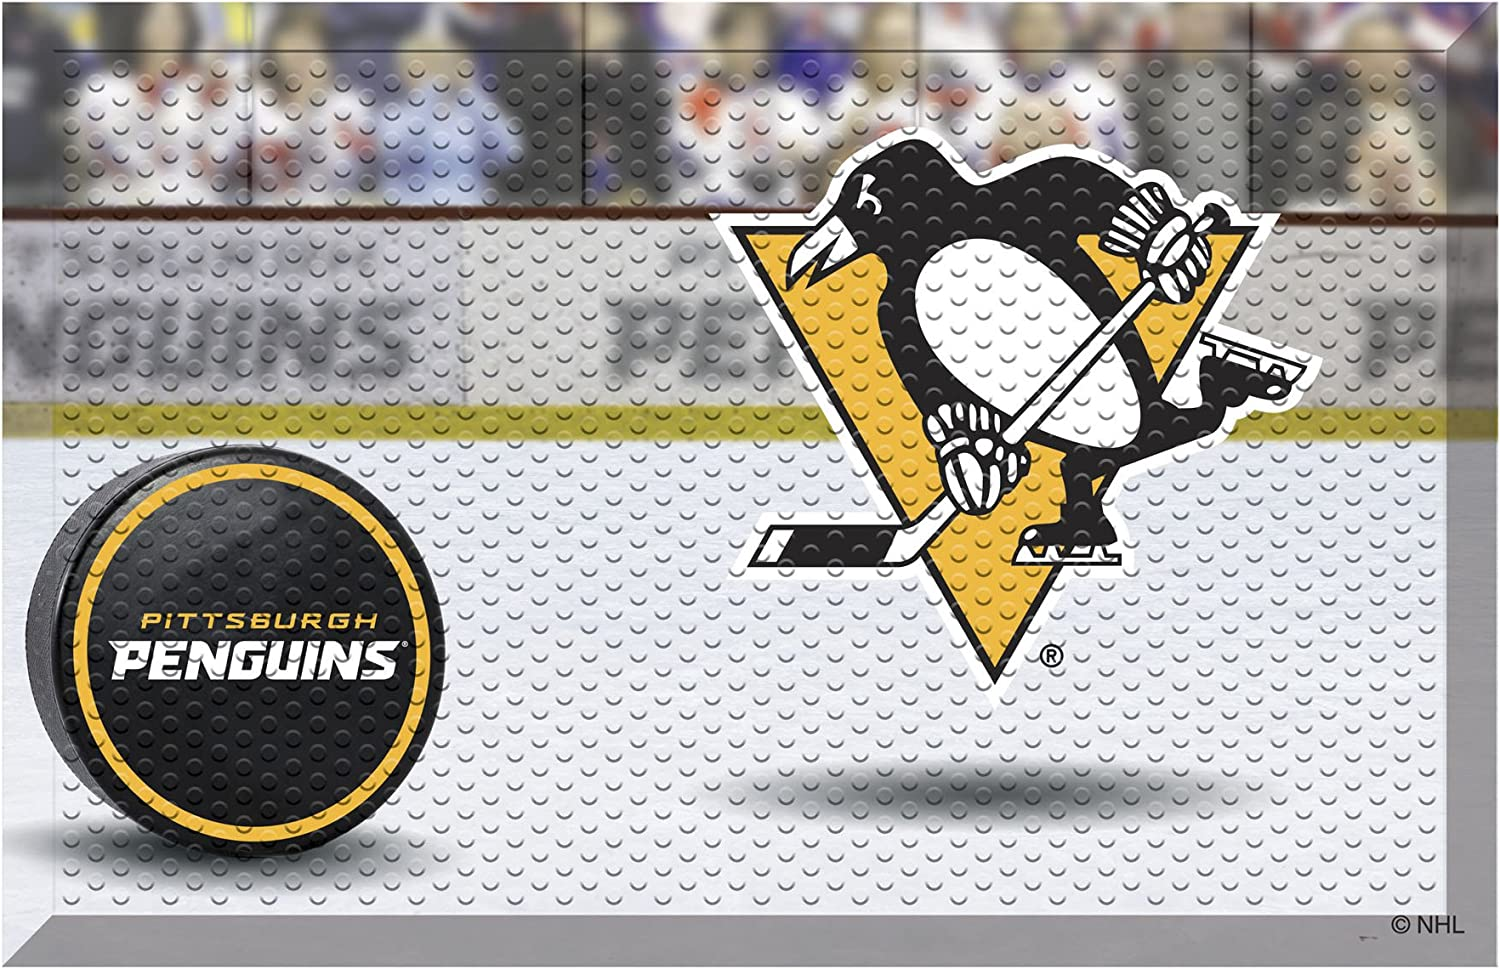 FANMATS 19168 Team Color 19 x 30 Pittsburgh Penguins Scraper Mat NHL Puck